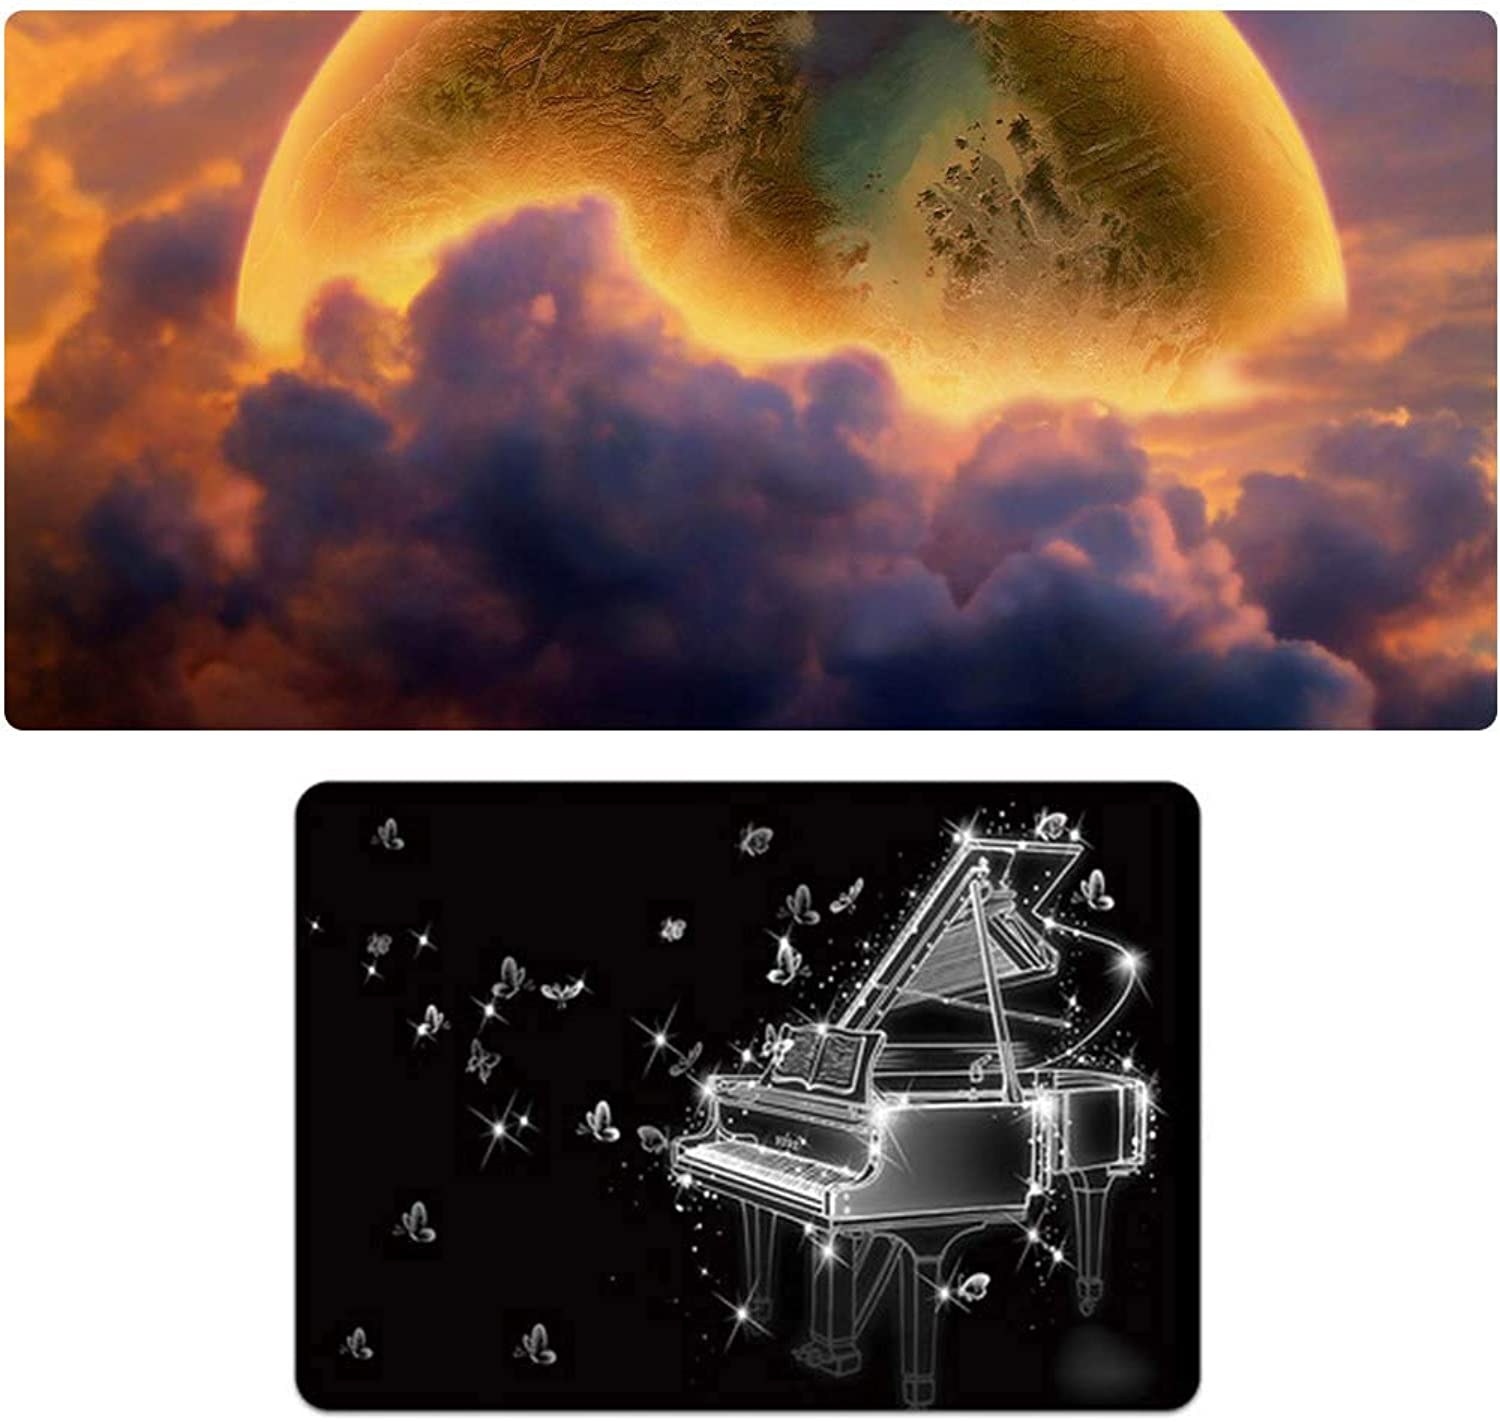 Oversized + Small Game Mouse Pad Set, SciFi Planet Piano Pattern, Game Esport Mouse Pad Keyboard Pad, Natural Rubber NonSlip 3mm Thick, Holiday Gift1900  400mm